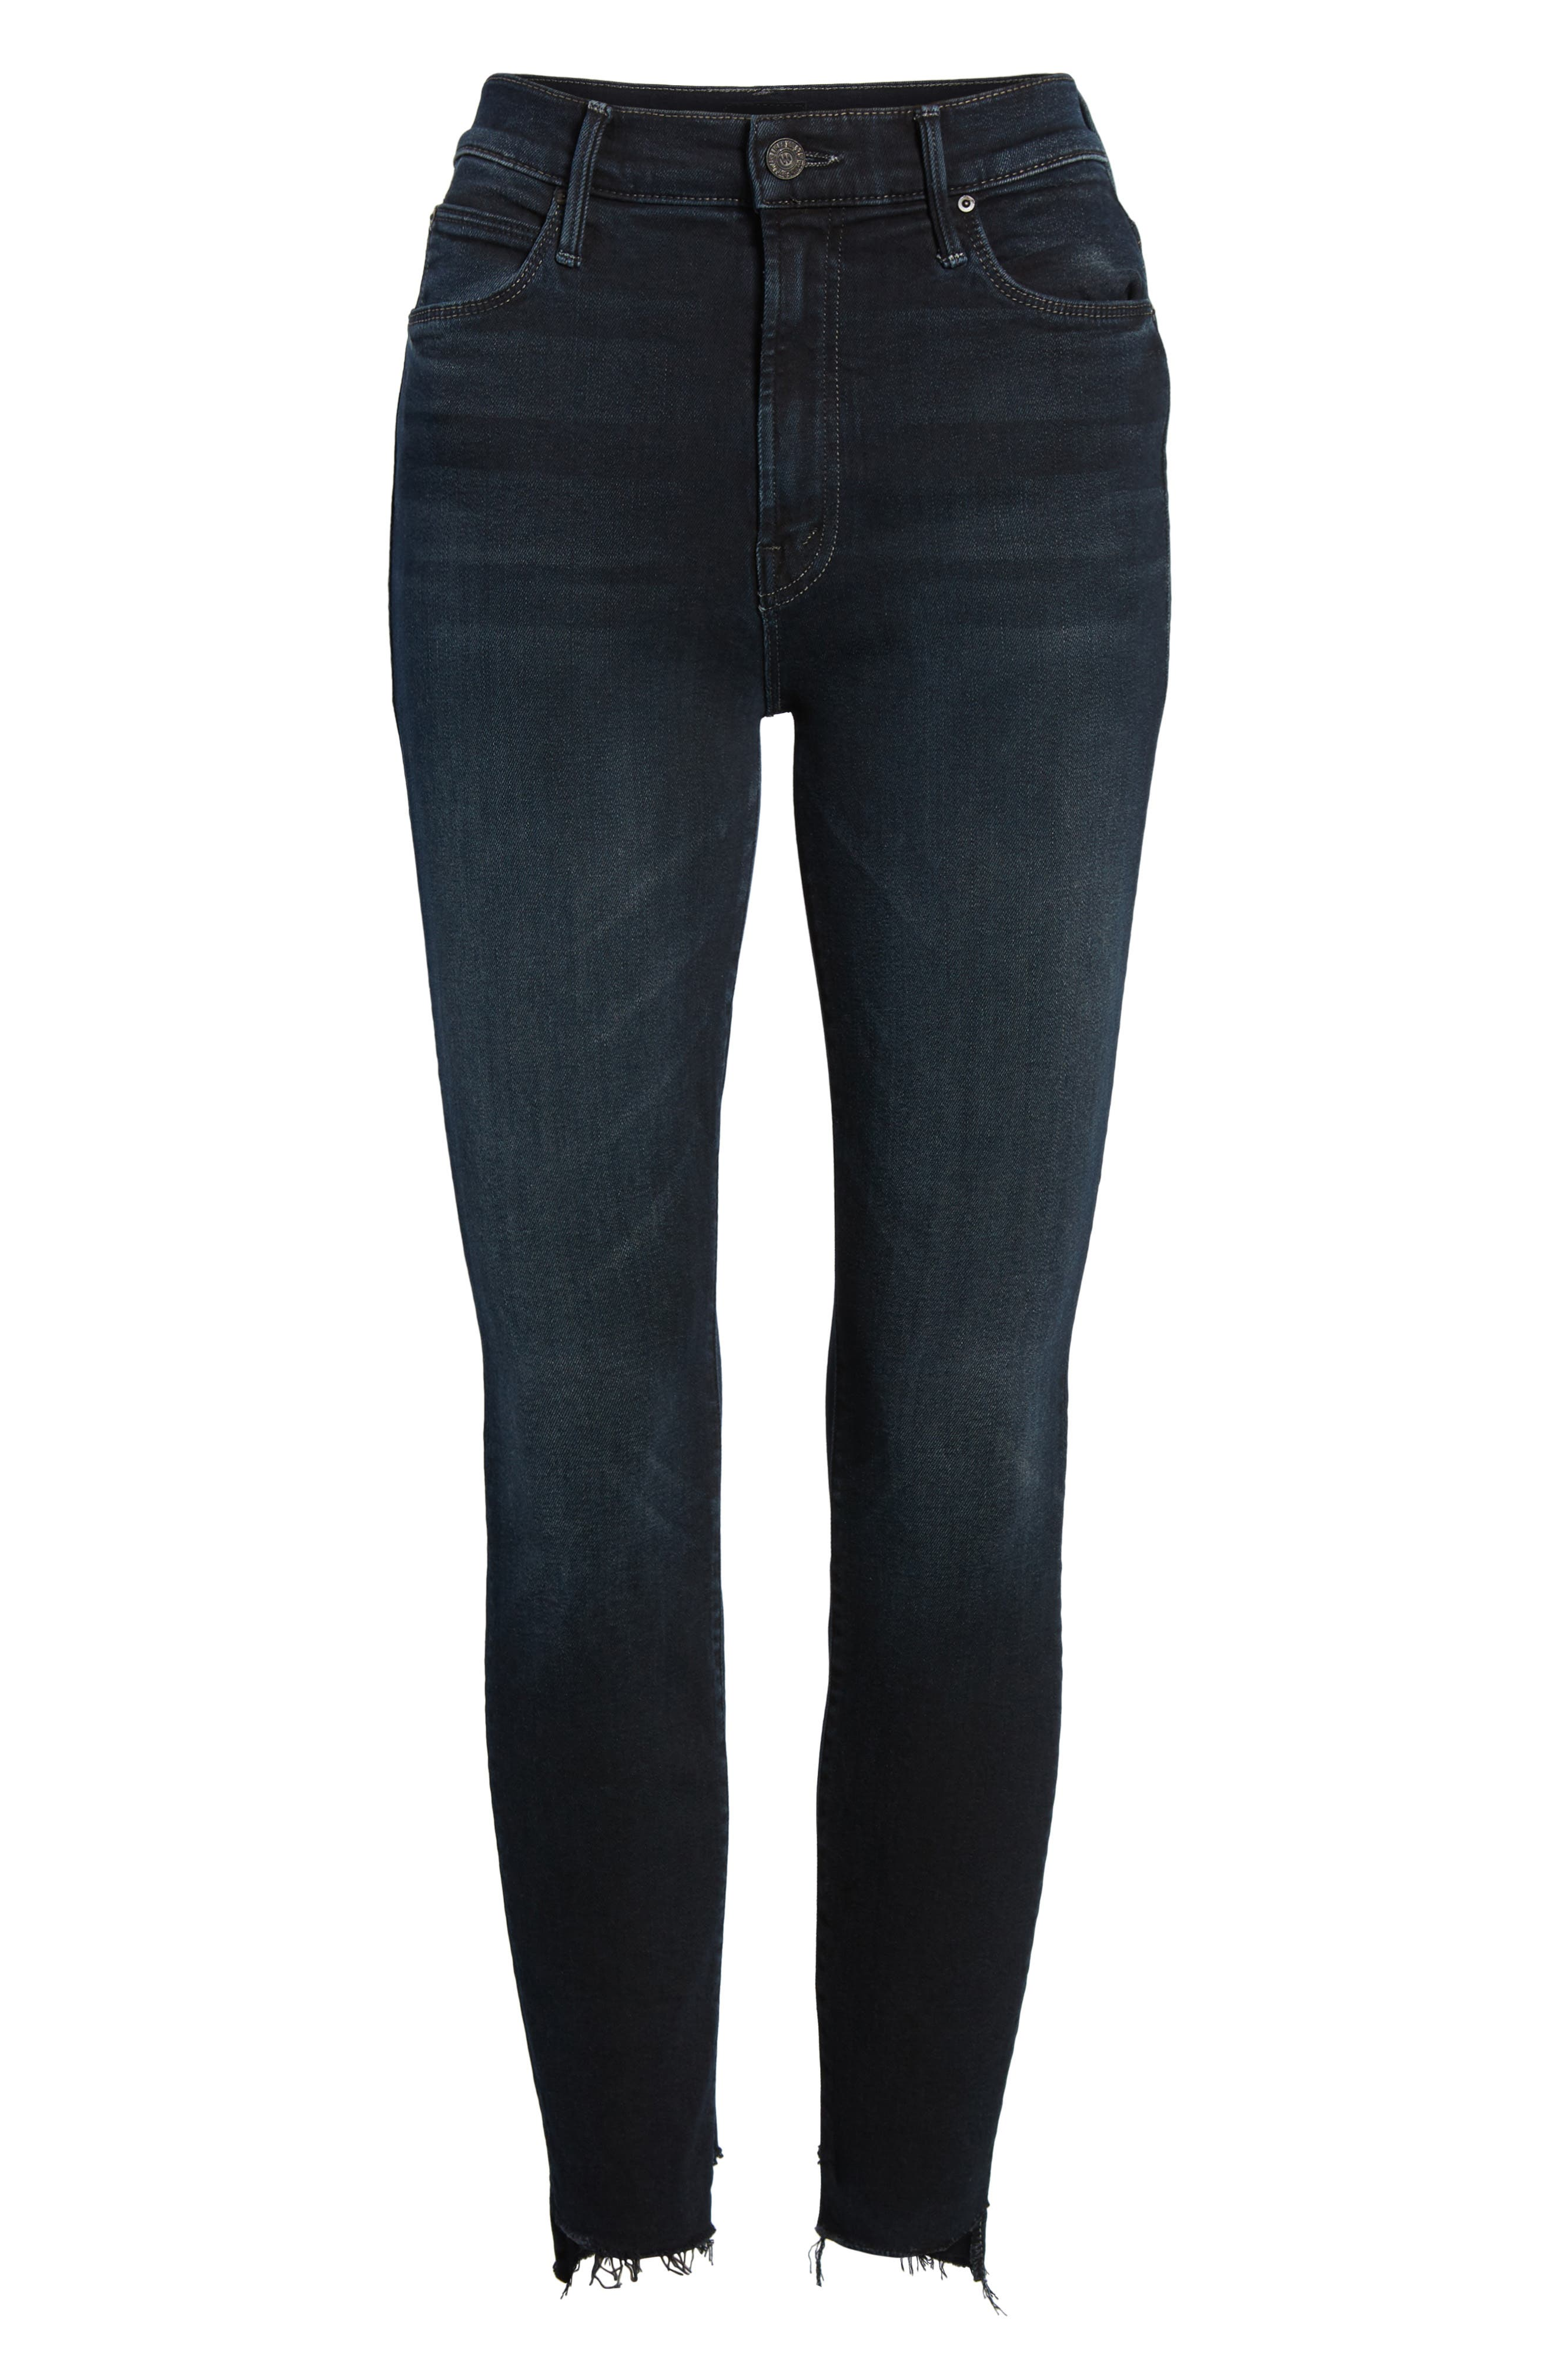 MOTHER, The Stunner High Waist Fray Ankle Skinny Jeans, Alternate thumbnail 7, color, LAST CALL